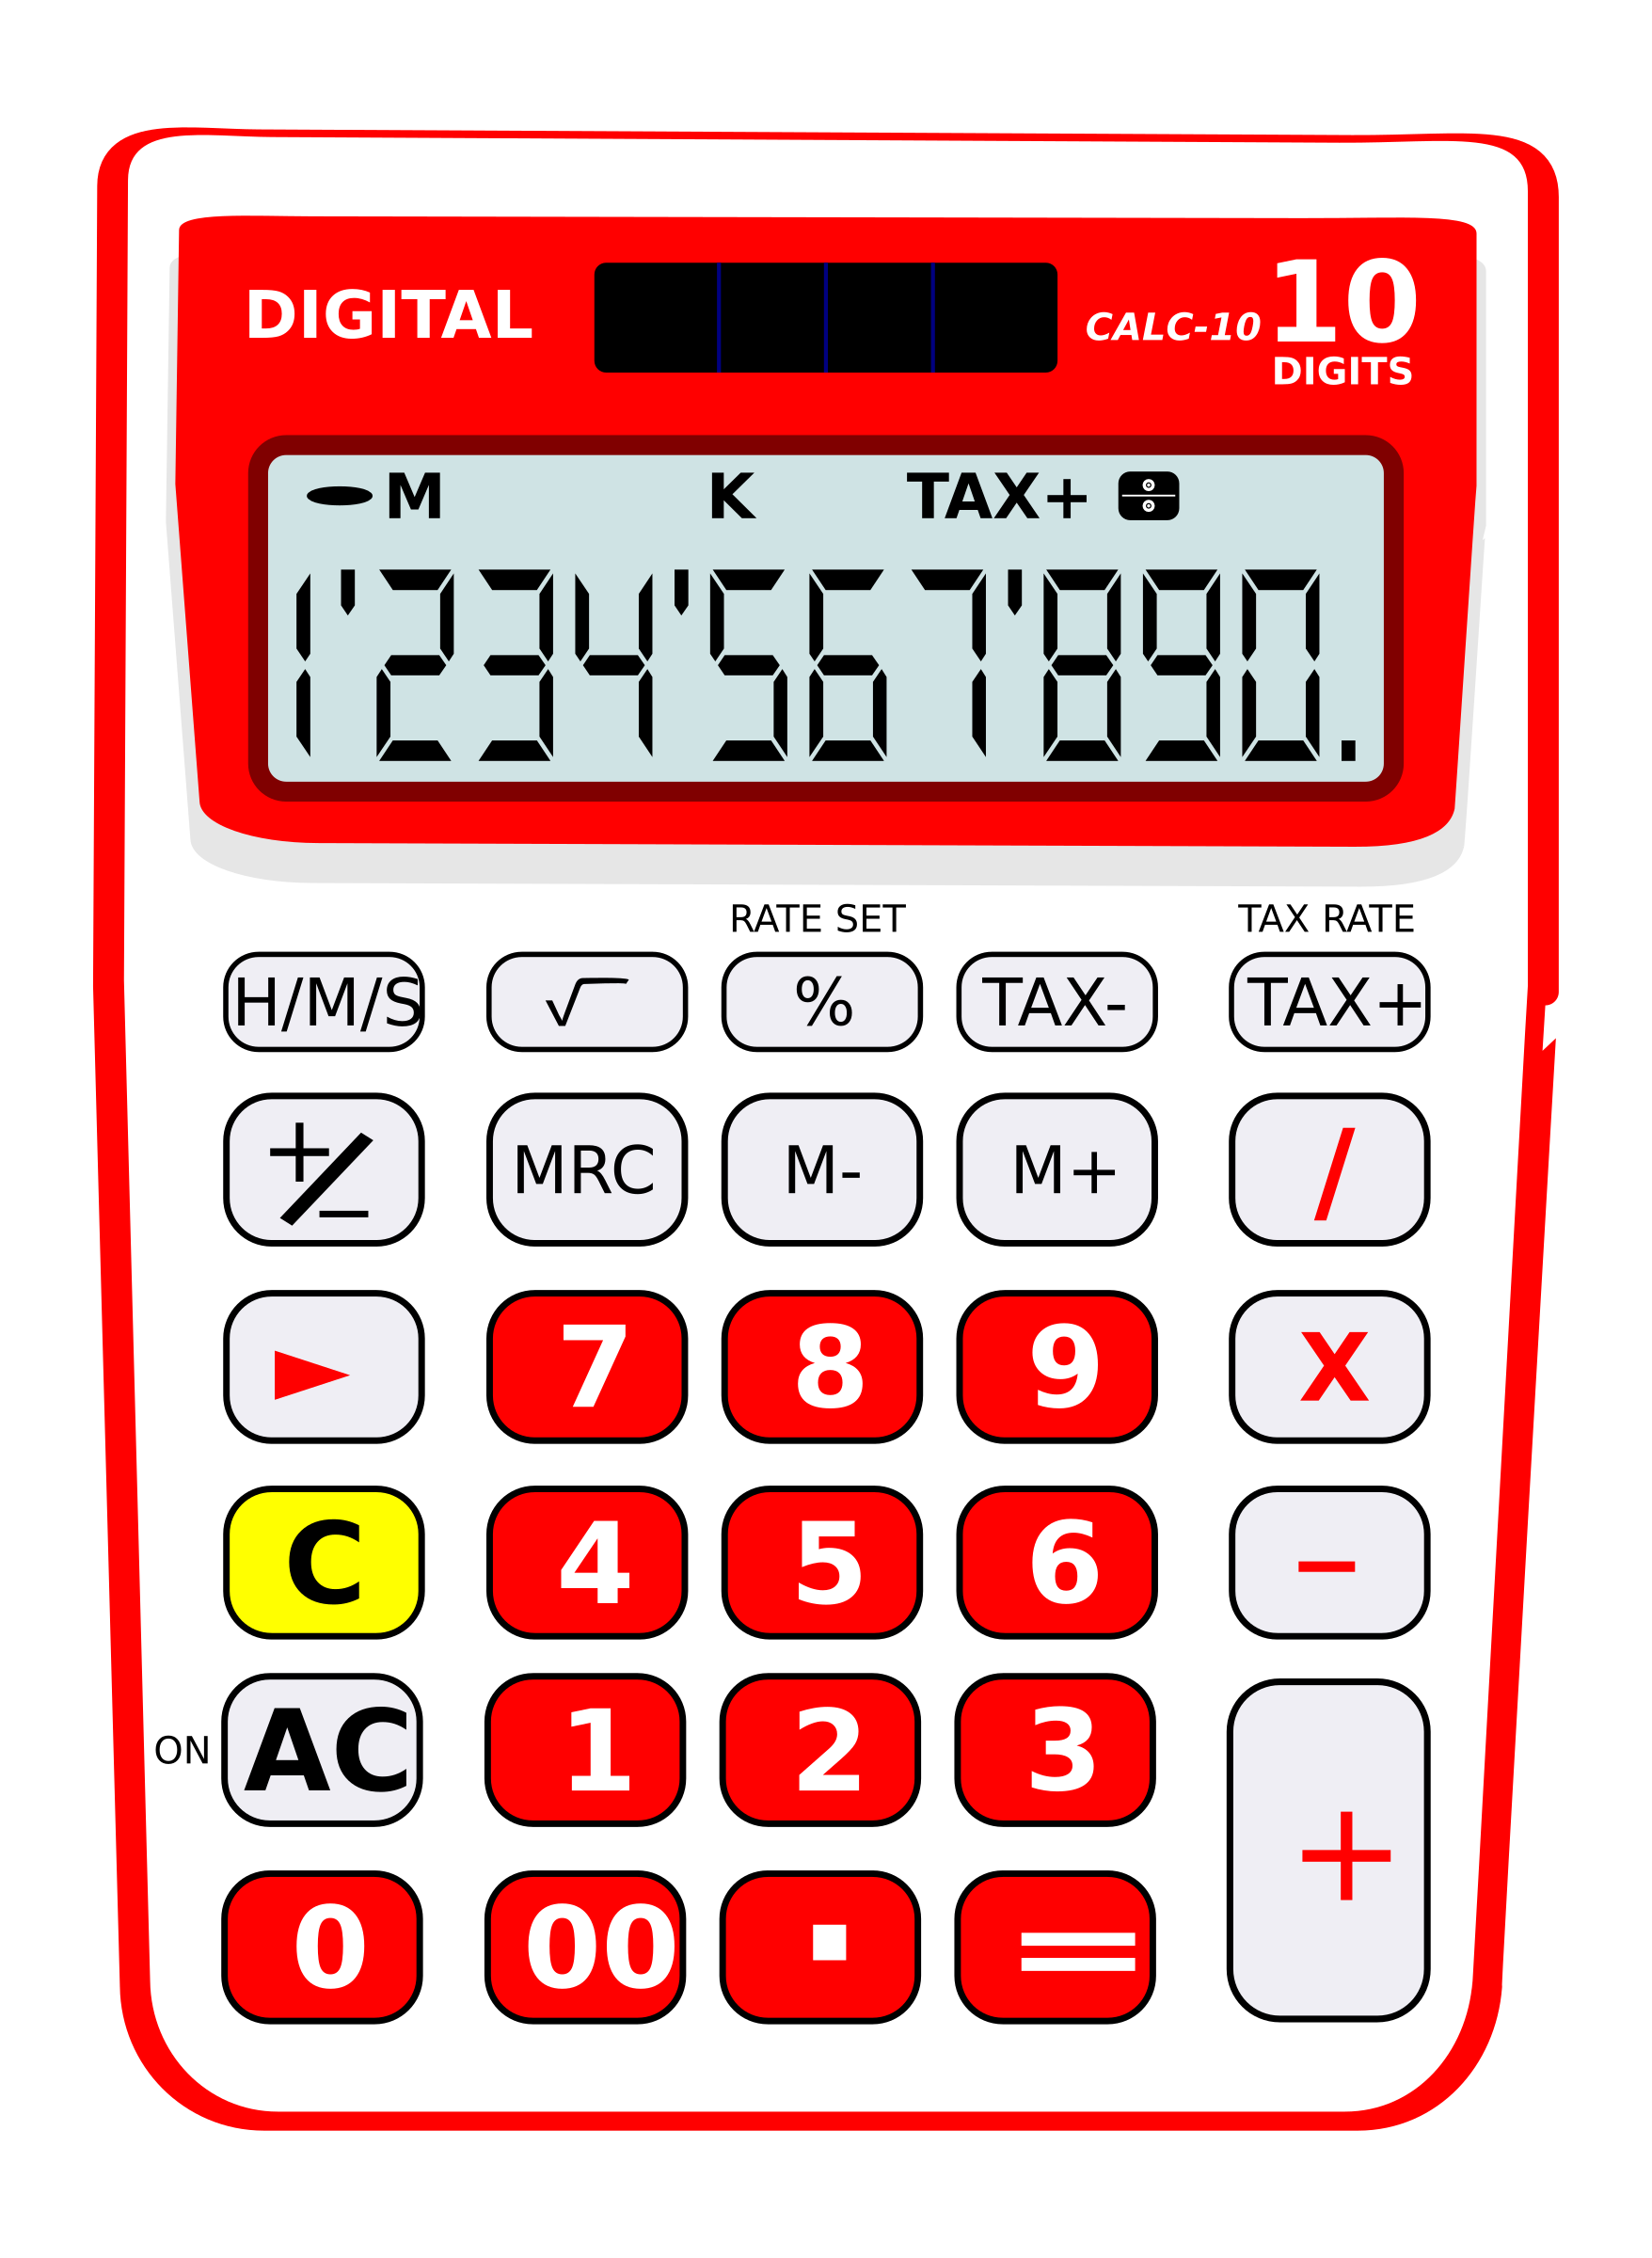 clip freeuse Amount free on dumielauxepices. Calculator clipart financial calculator.